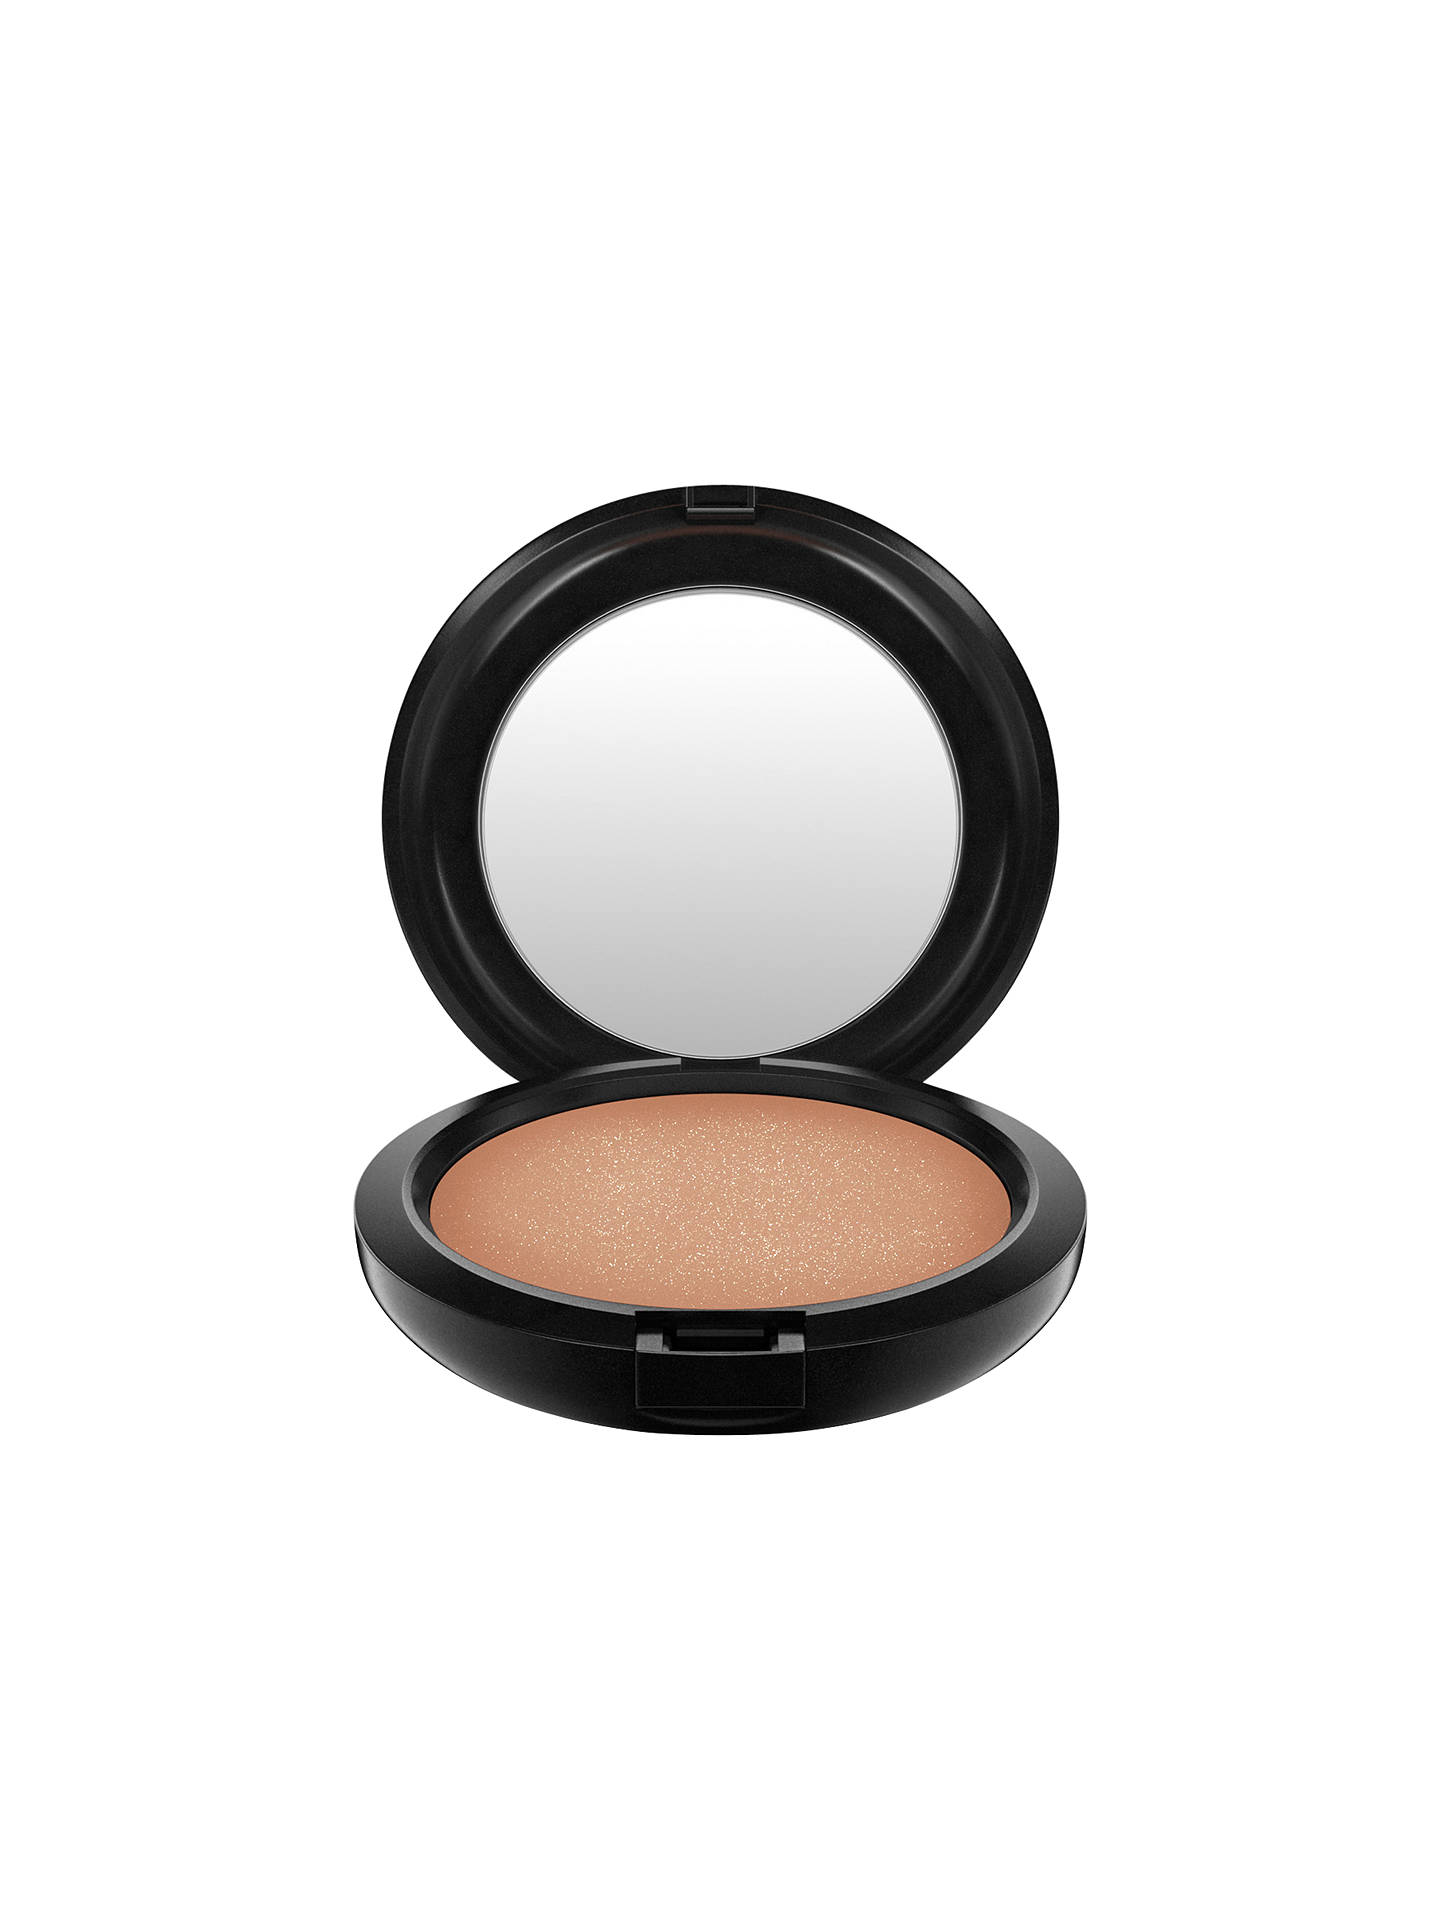 BuyMAC Bronzing Powder, Refined Golden Online at johnlewis.com